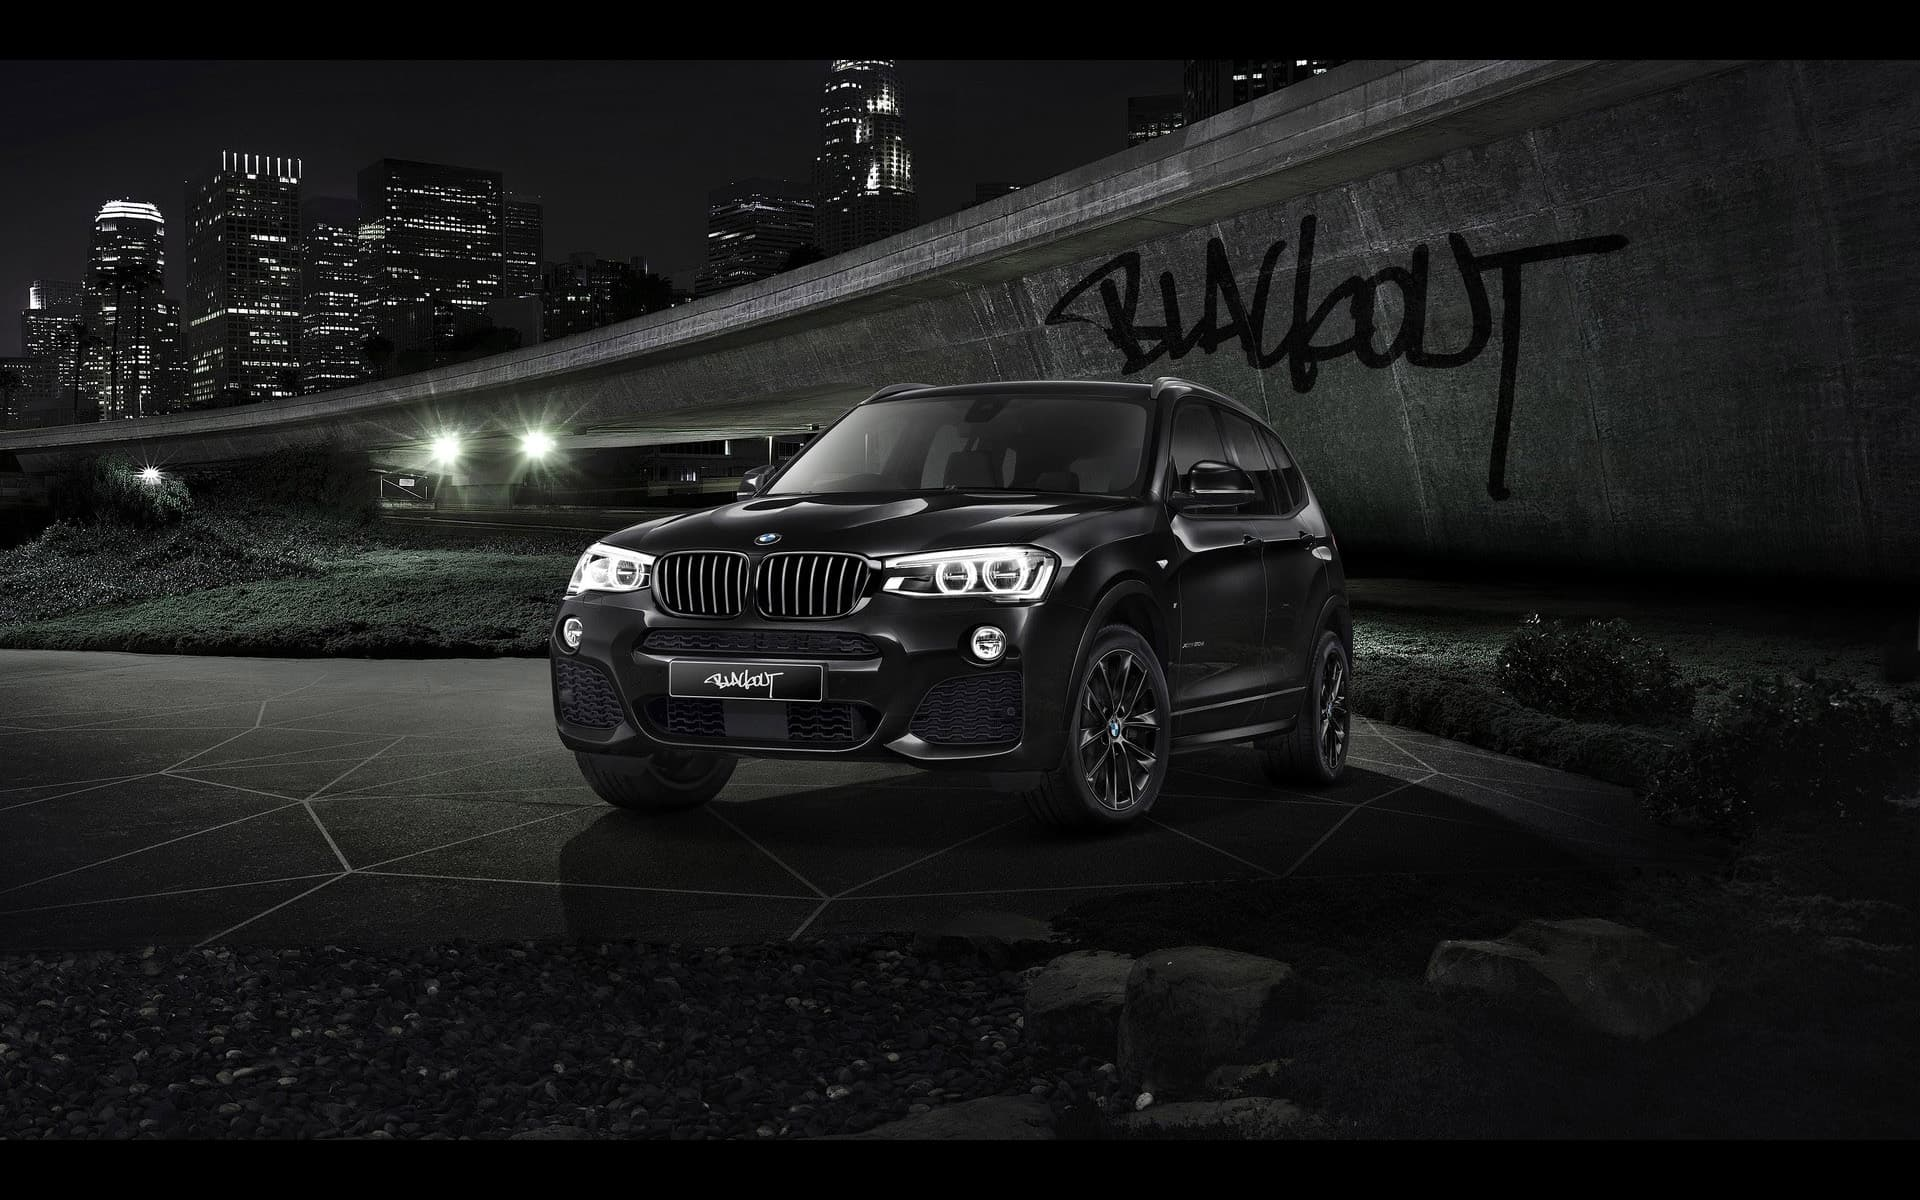 BMW X3 2017 Black Edition High Quality